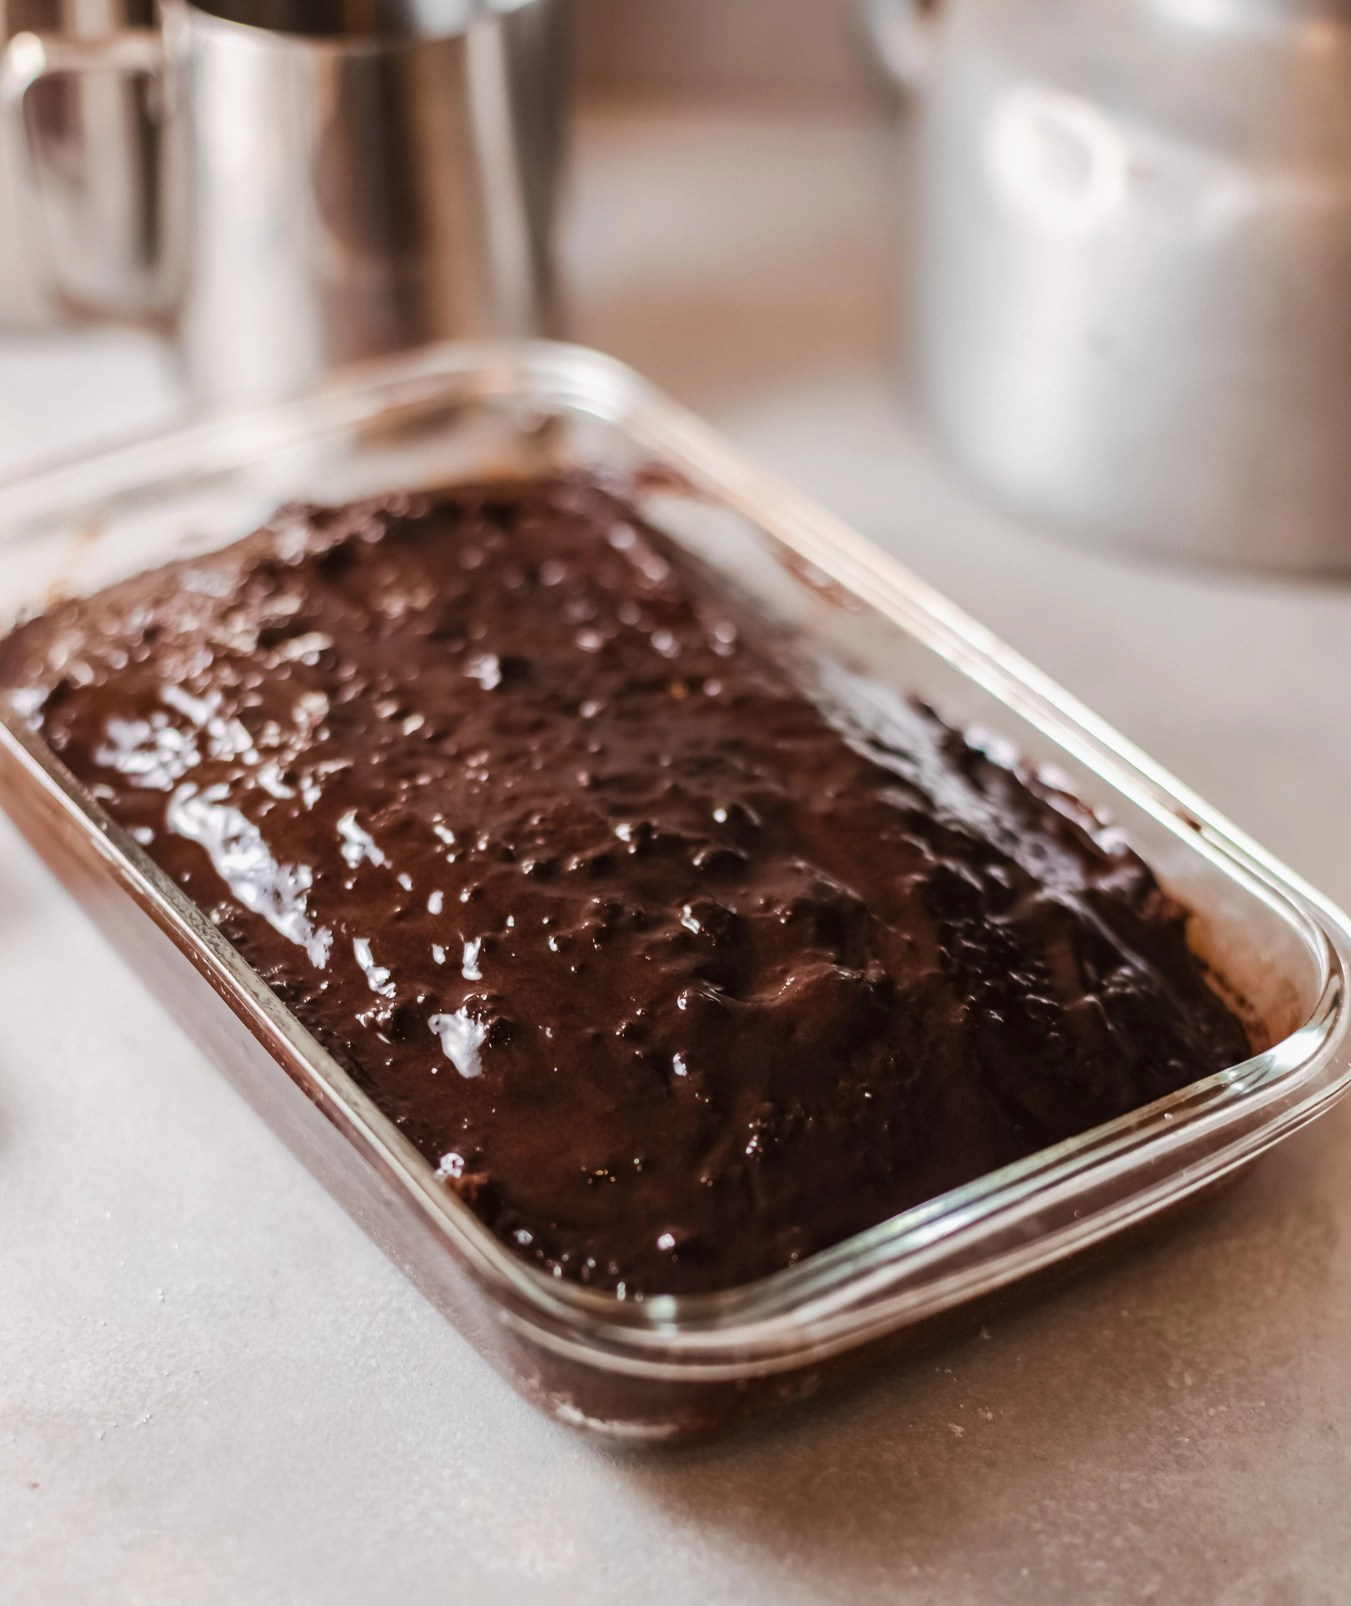 Sticky Toffee Pudding - Pour Syrup over Pudding in Pan